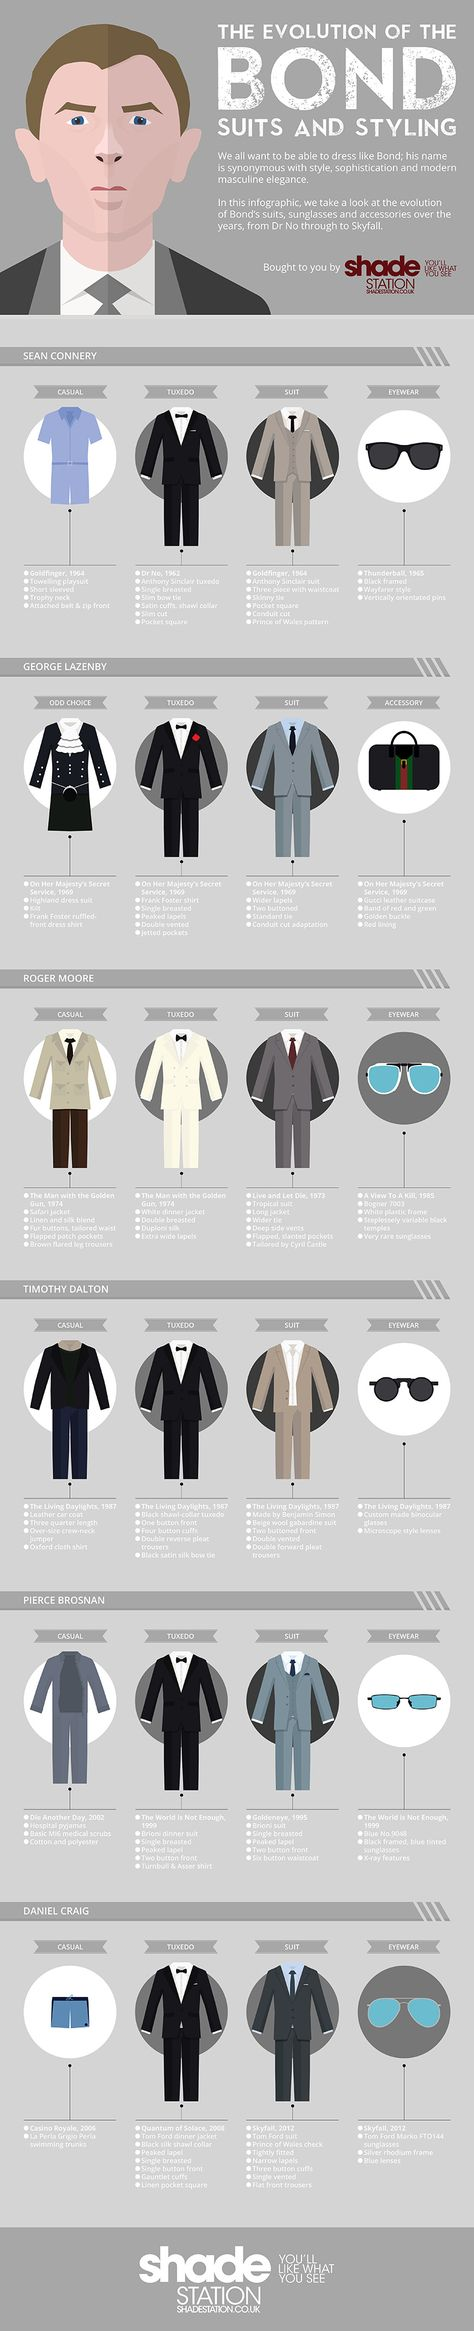 The Evolution of James Bond's Suits and Styling. #007 #Bond #fashion